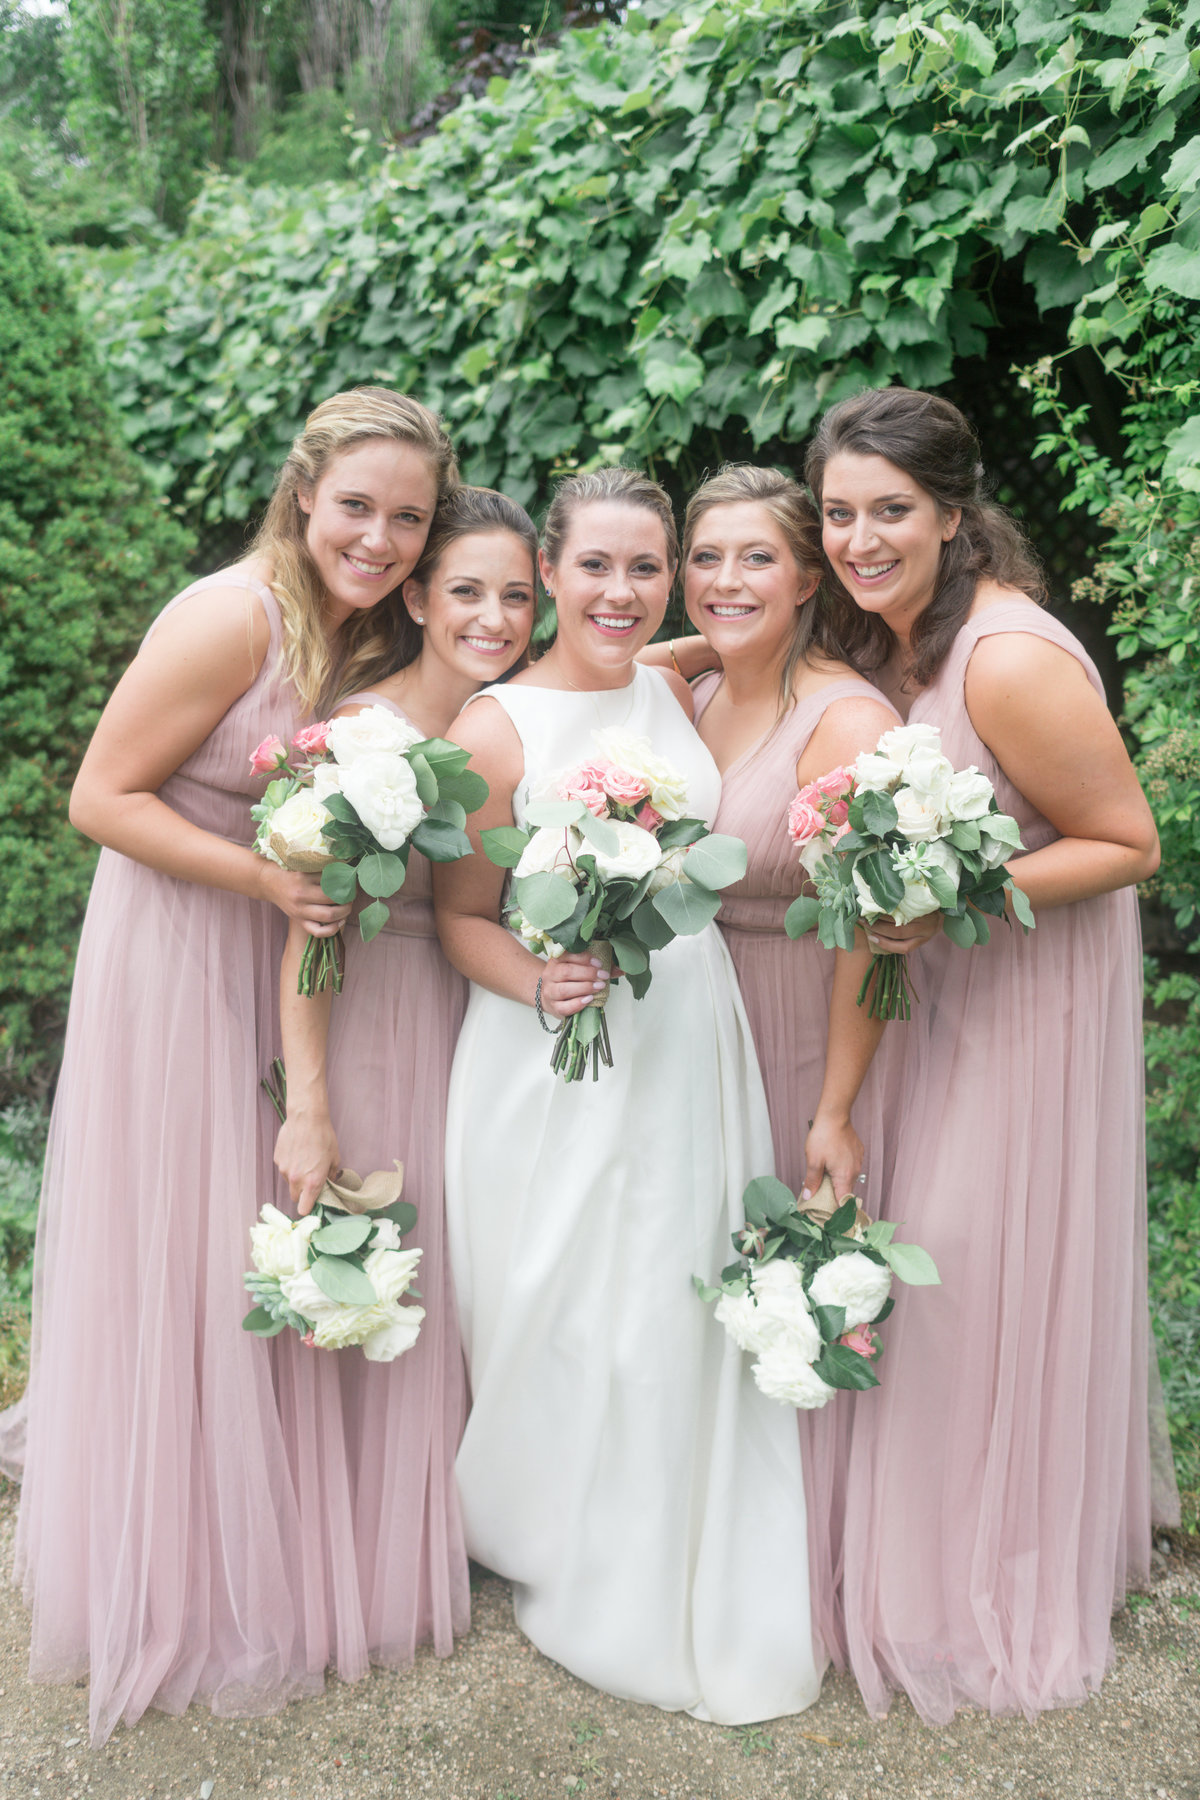 Bridal Party poses for photo in the secrete garden at the Castine Inn